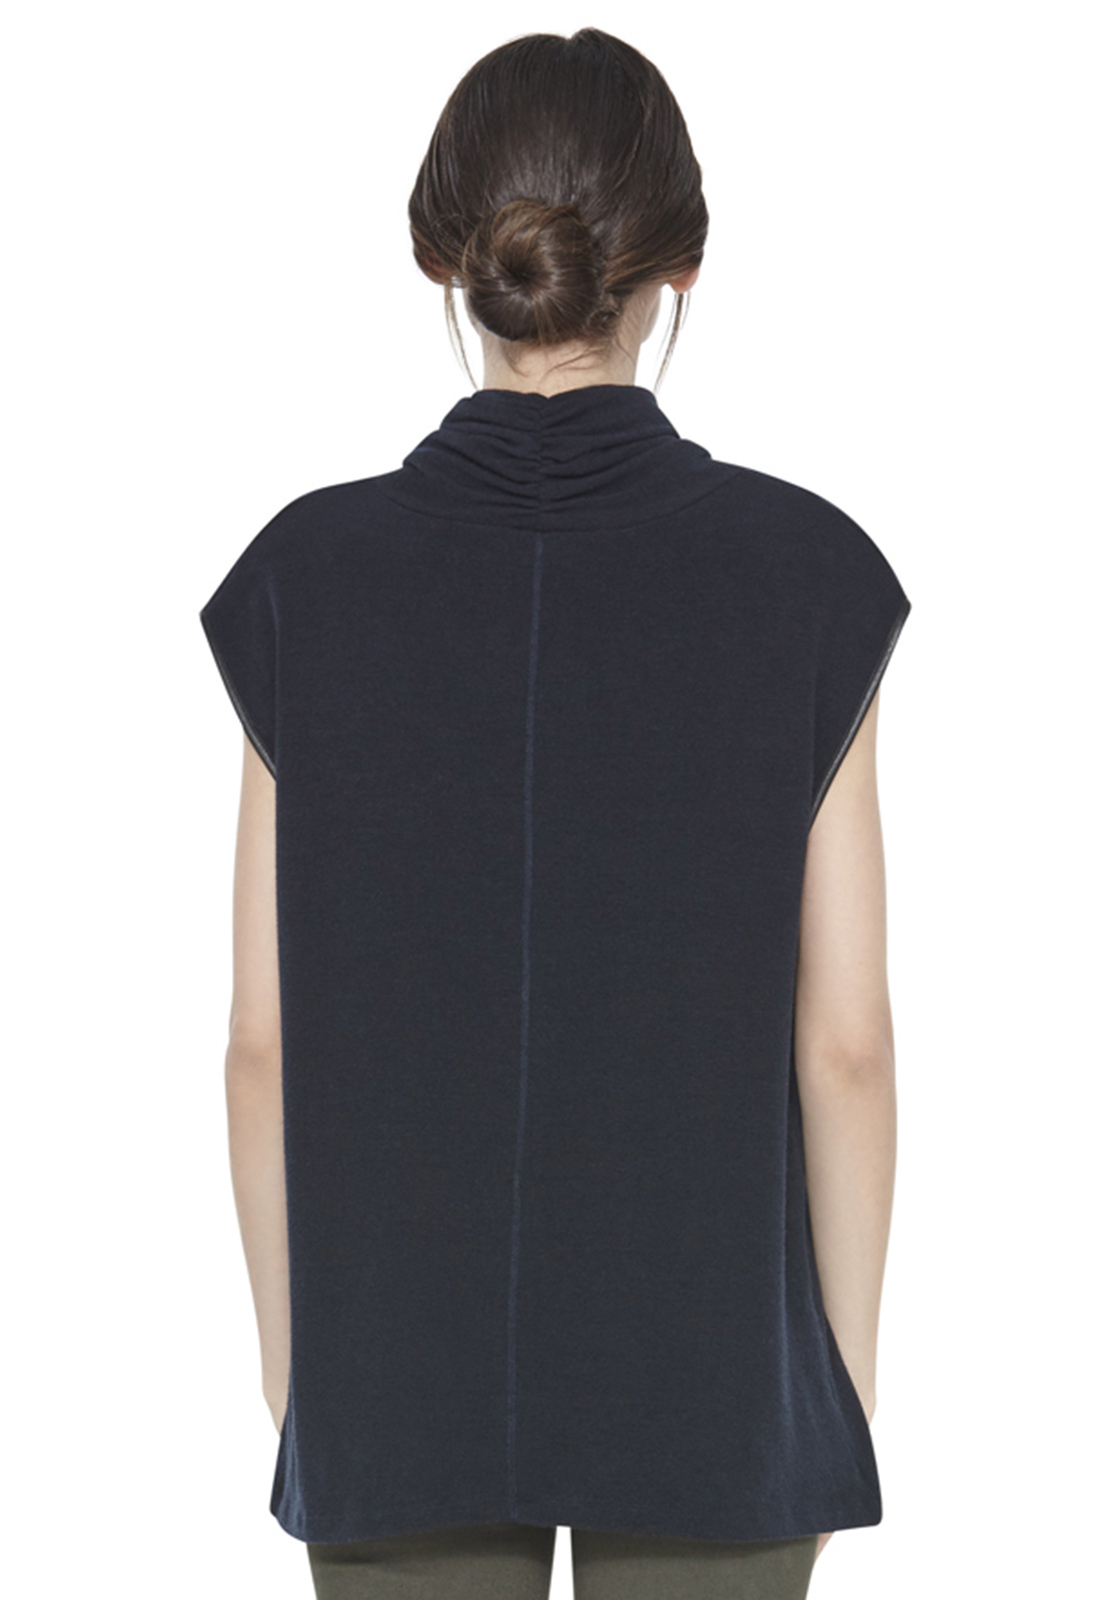 Alice Olivia Cowl Turtleneck Sleeveless Top In Black Lyst